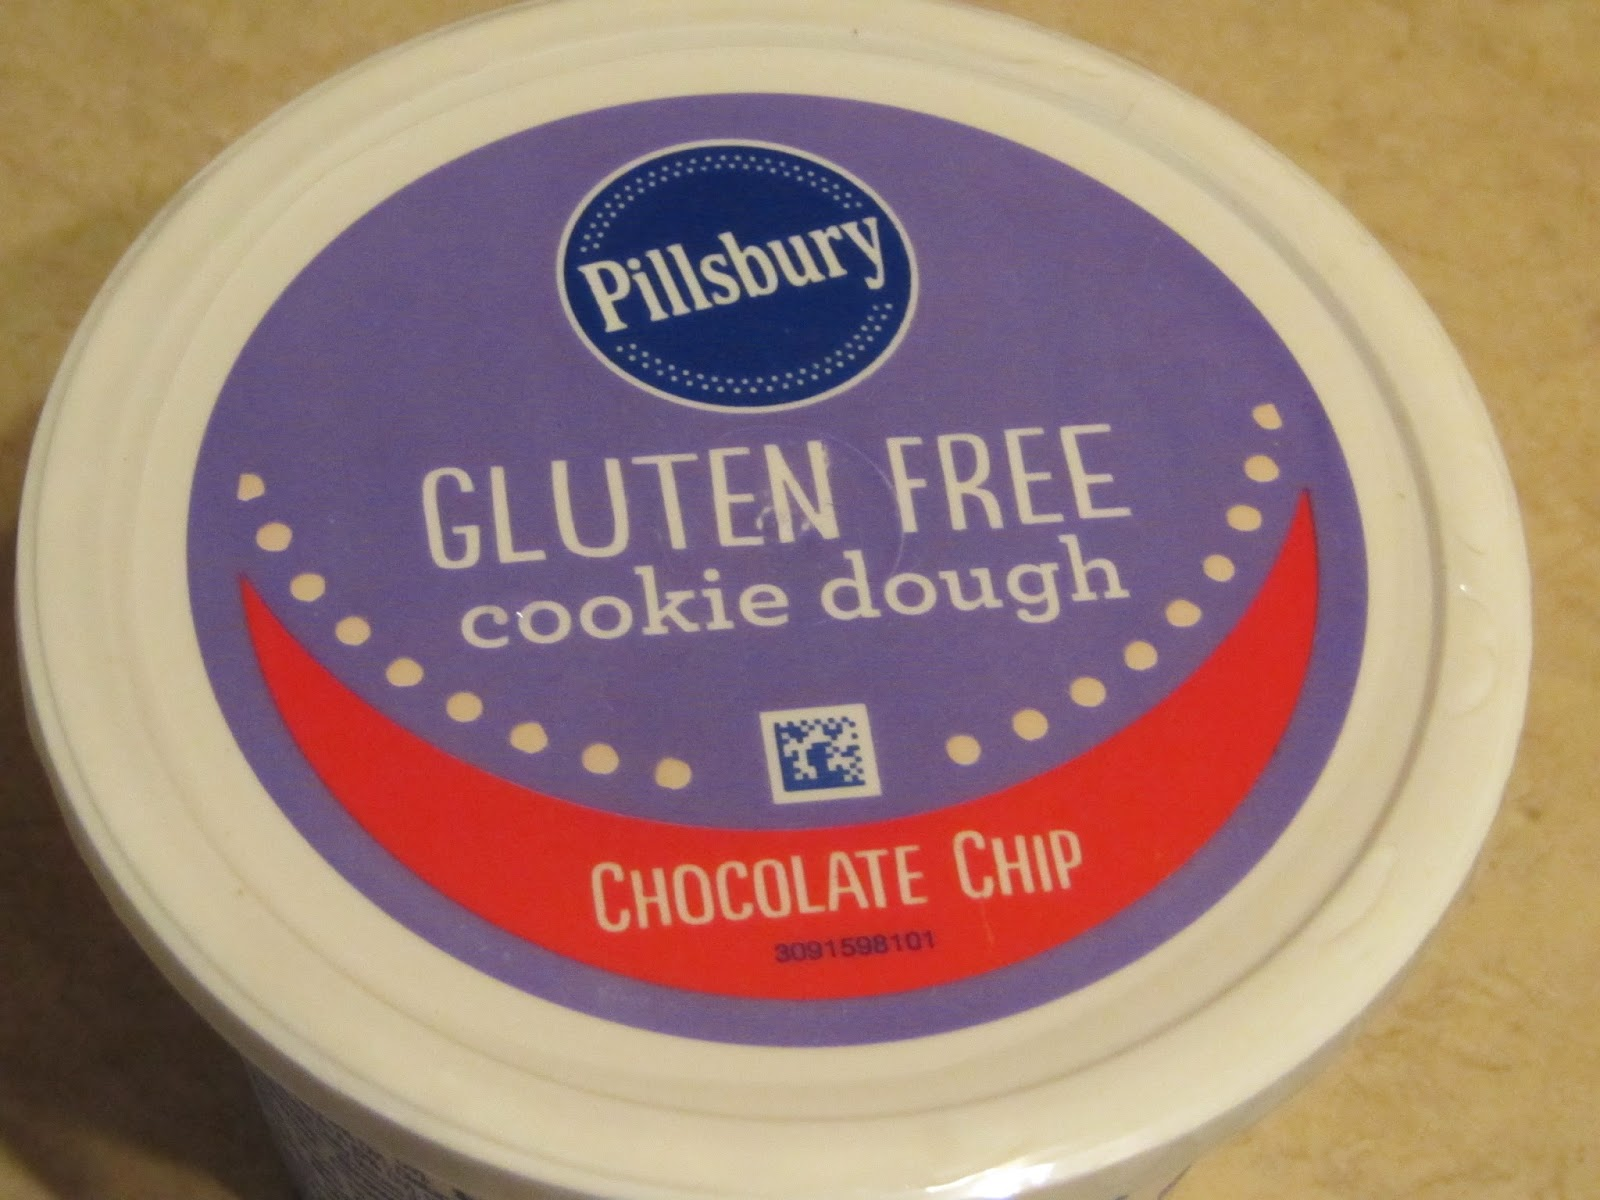 New Pillsbury Gluten Free Cookie Dough!